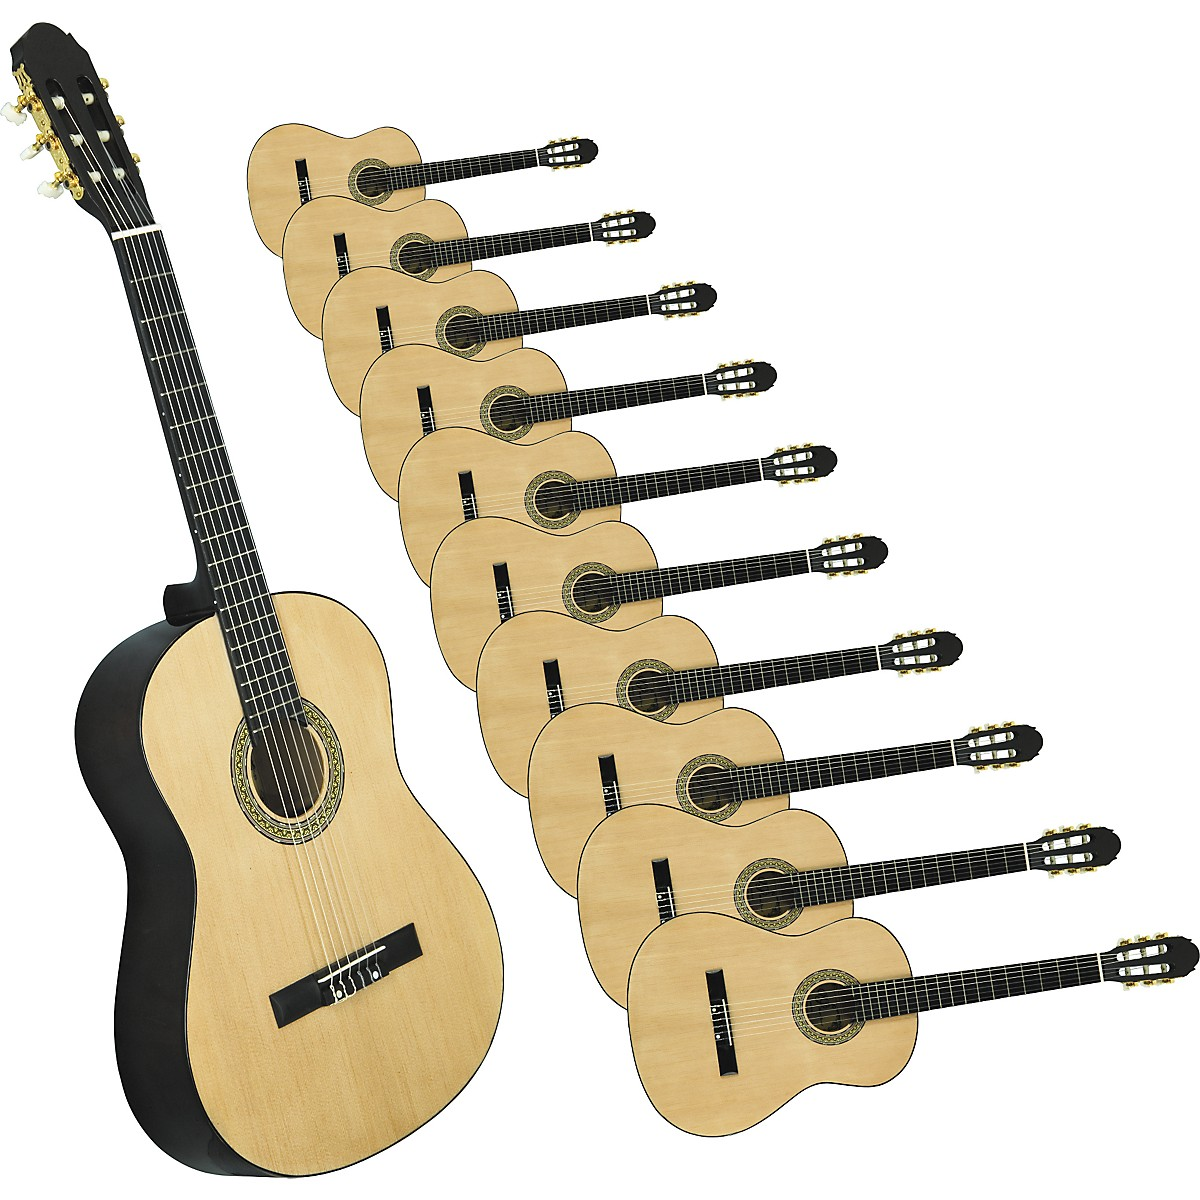 Lyons Classroom Guitar Program Kit 3/4 - Buy 10, Get One Free